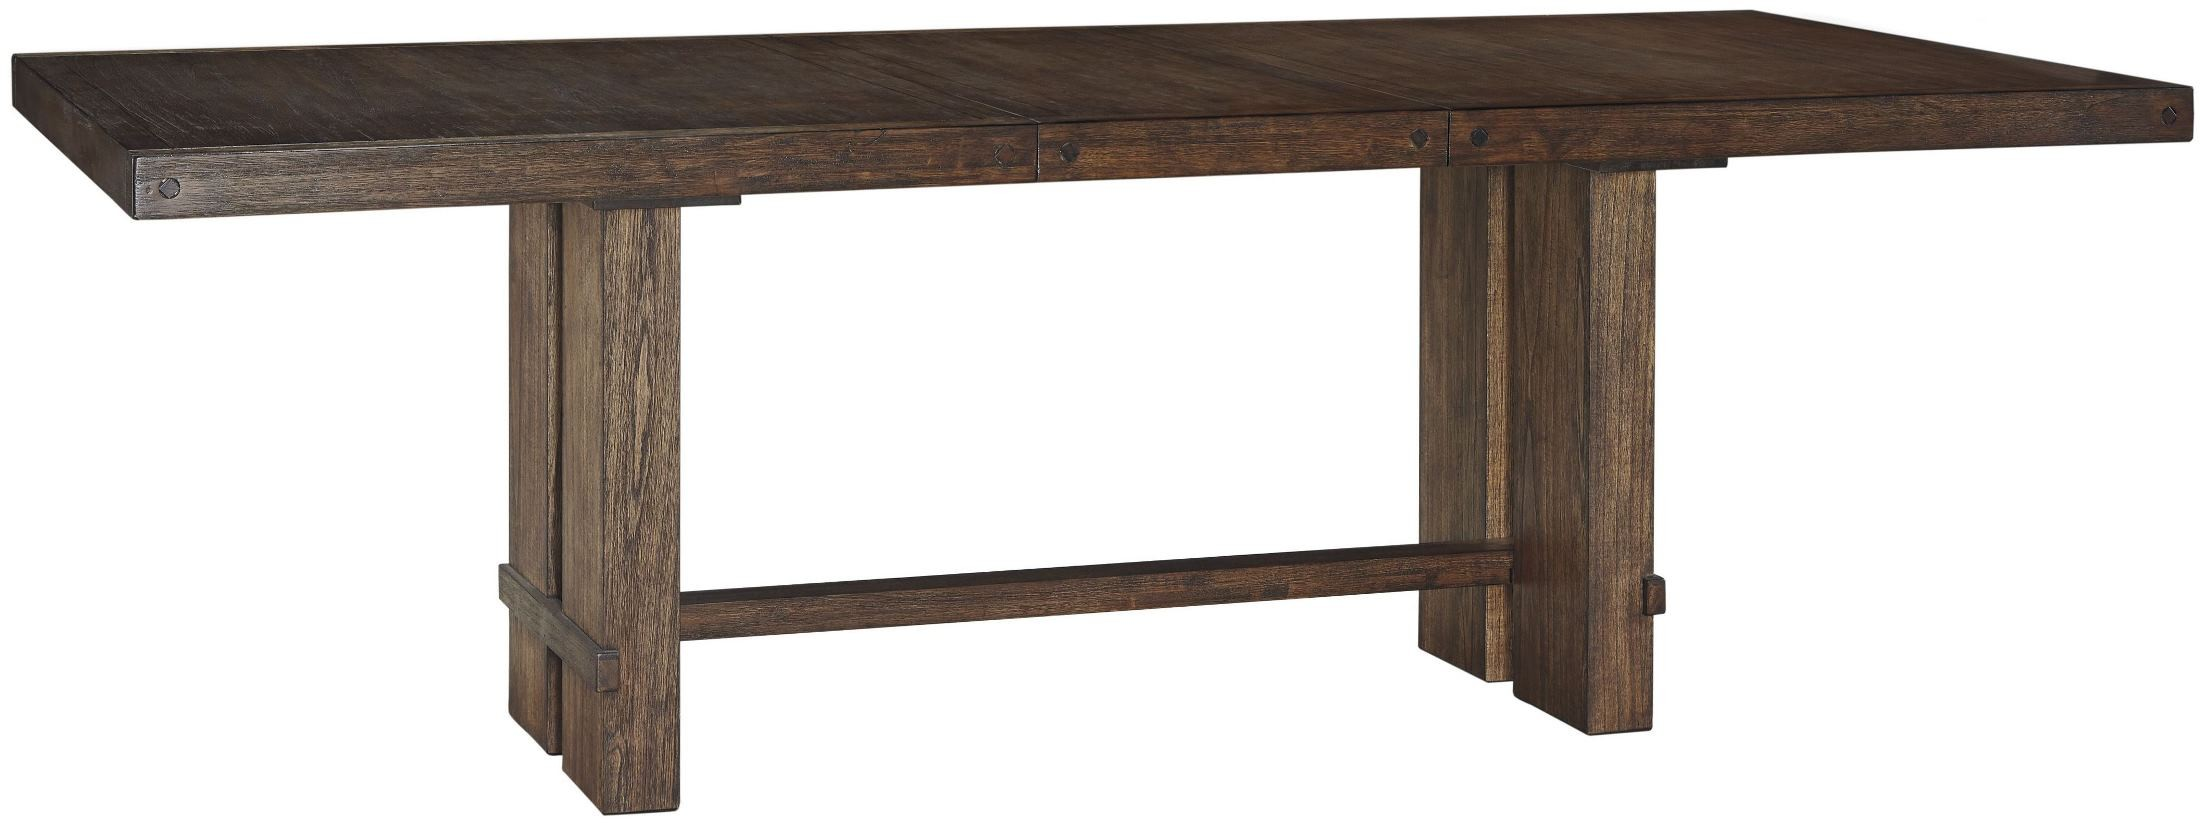 dark brown rectangular extendable dining table d614 35 ashley